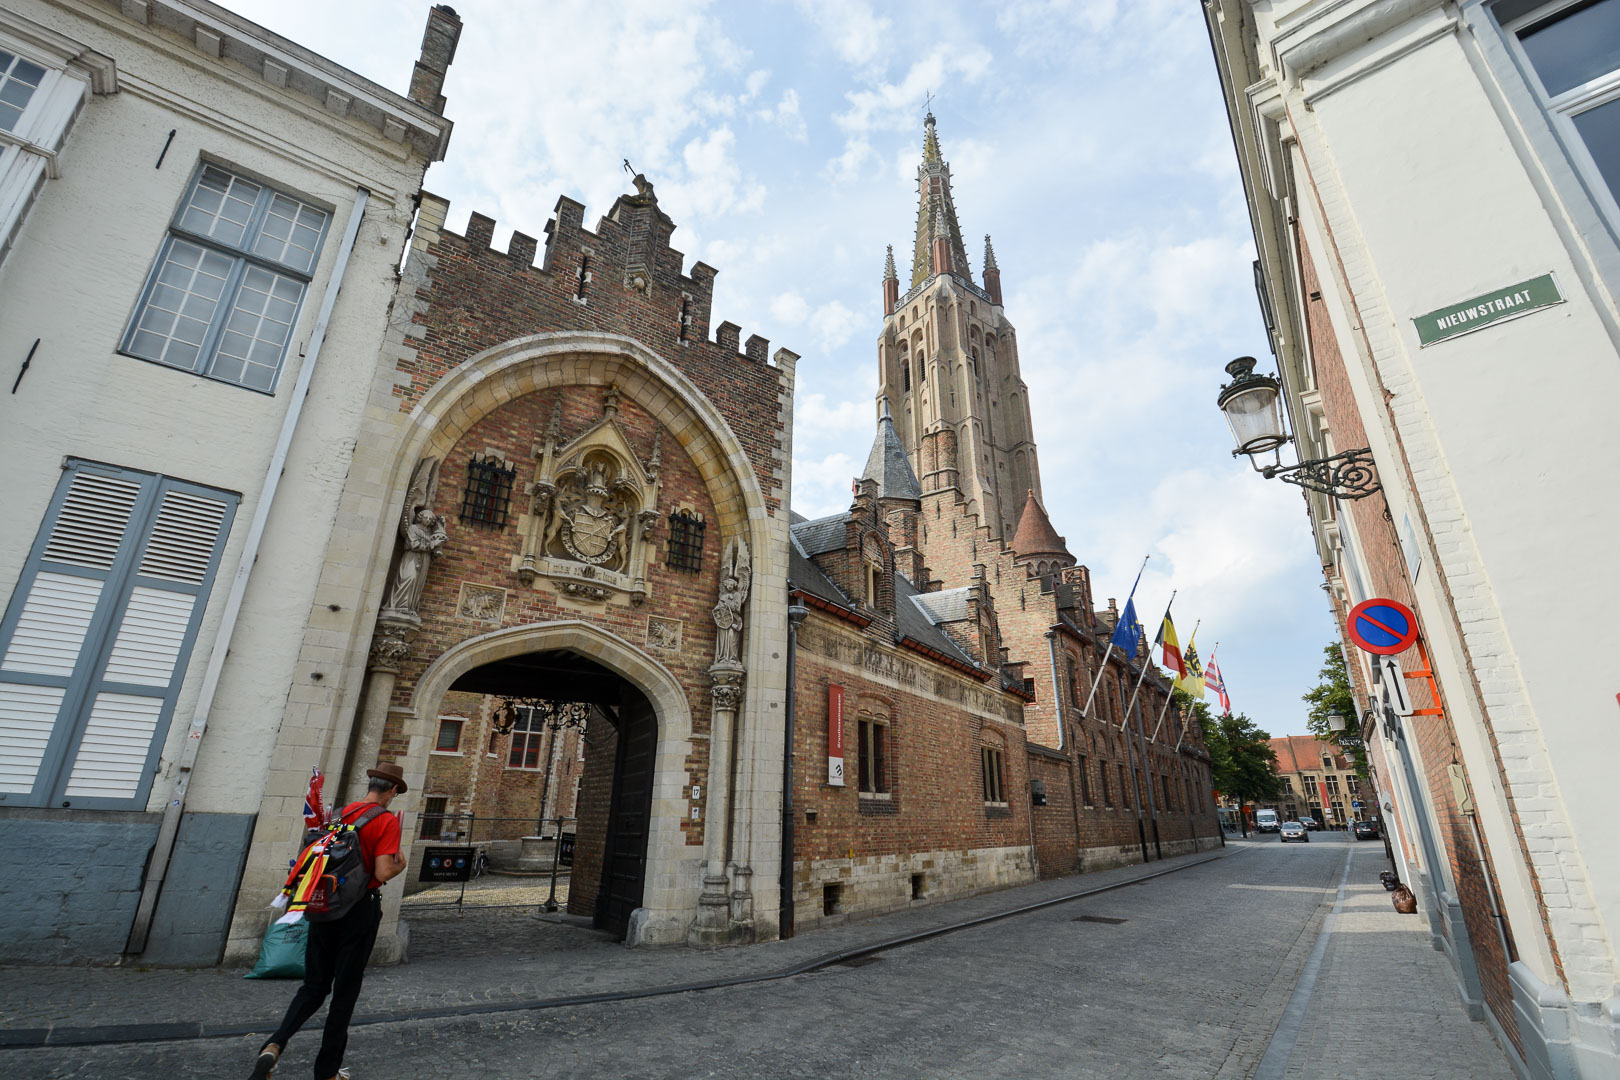 Being led near Sint-Salvatorskathedraal by our Flemish guide. This cathedral is from the 1300s and known for its Flemish artworks